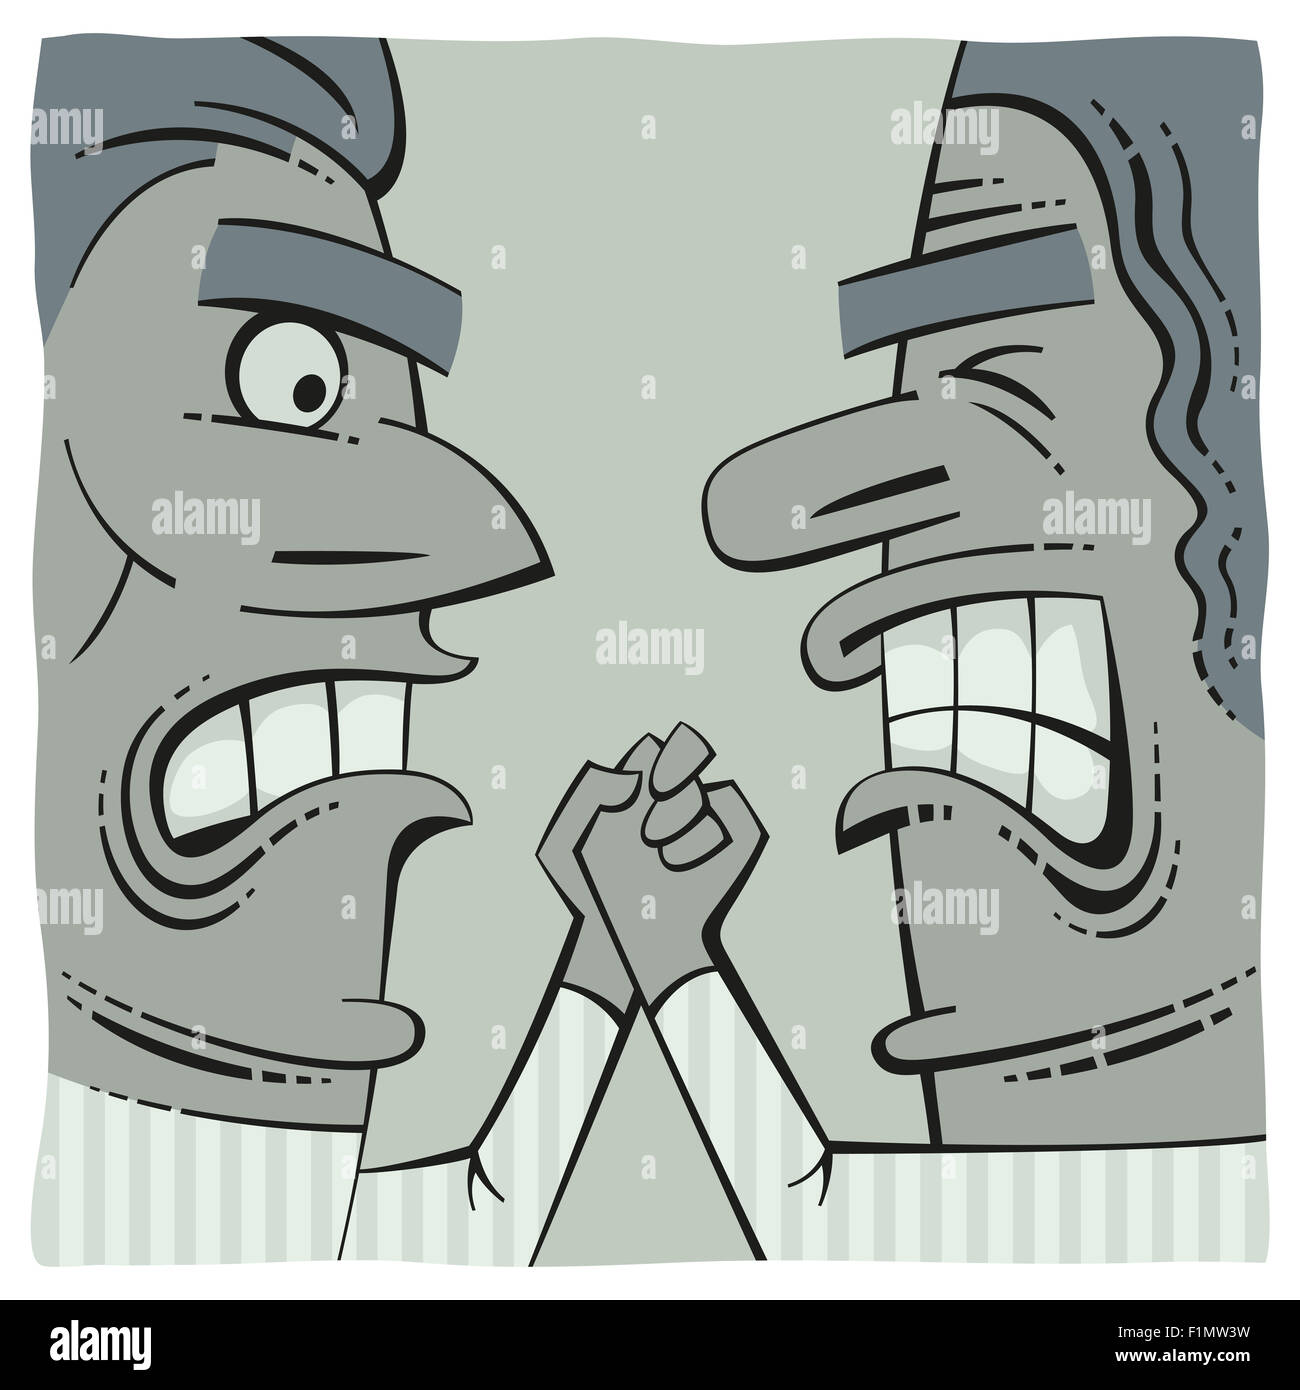 Hand fight of two angry men - Stock Image